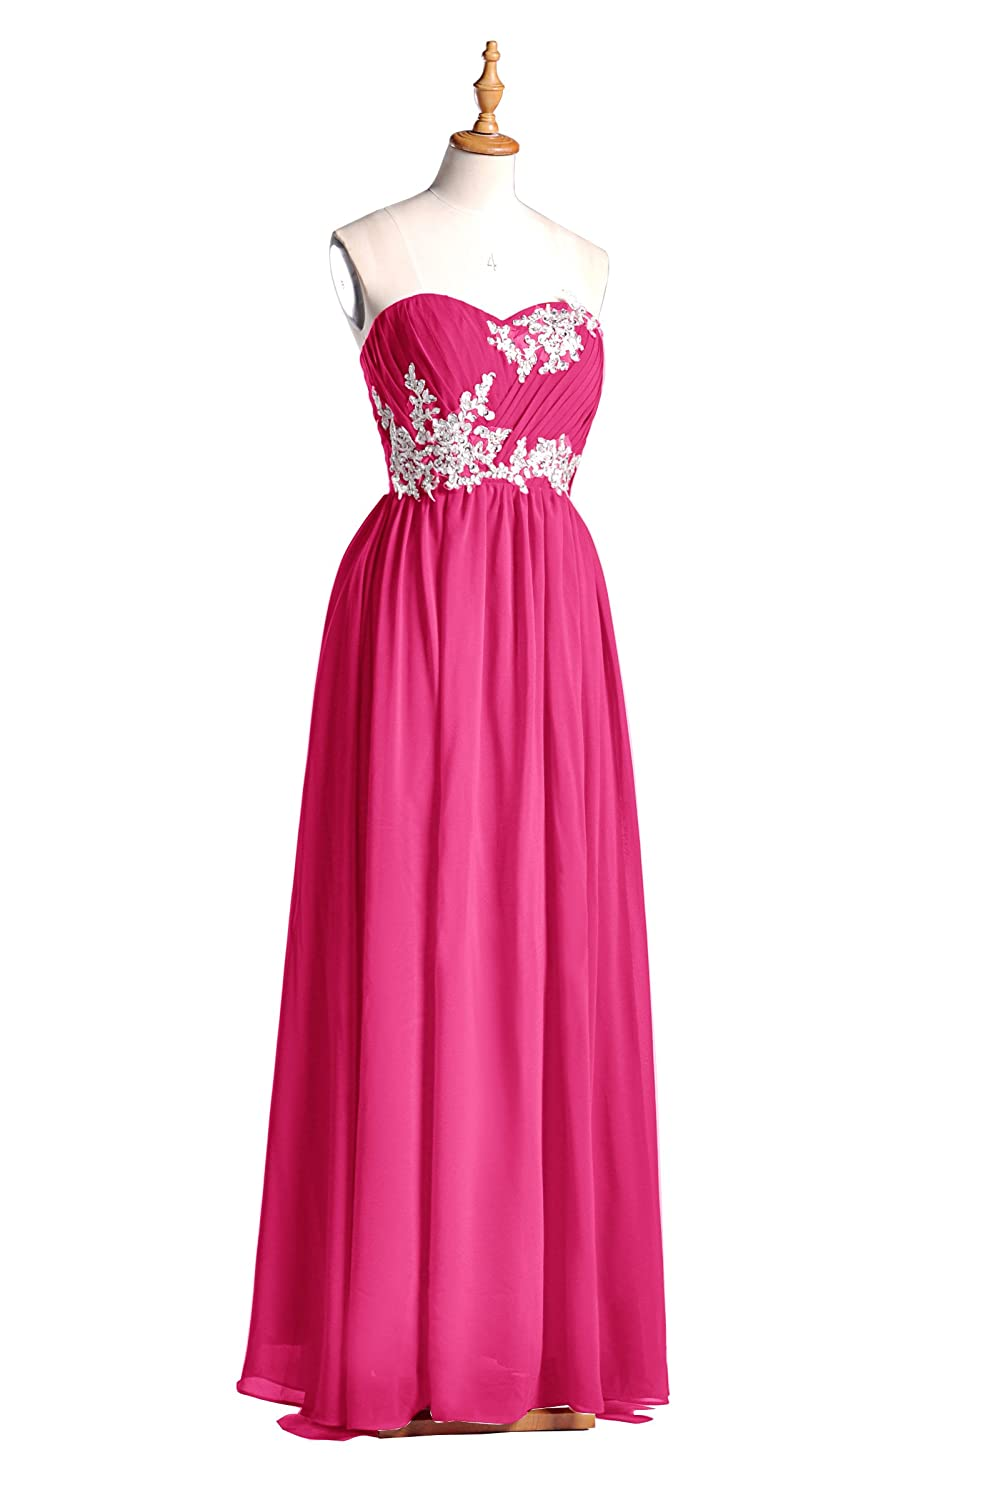 99Gown Bridesmaid Dress Long Special Occasion Gown Formal Dresses For Women Lace Prom Dresses, Color Fuschia, 10 at Amazon Womens Clothing store: